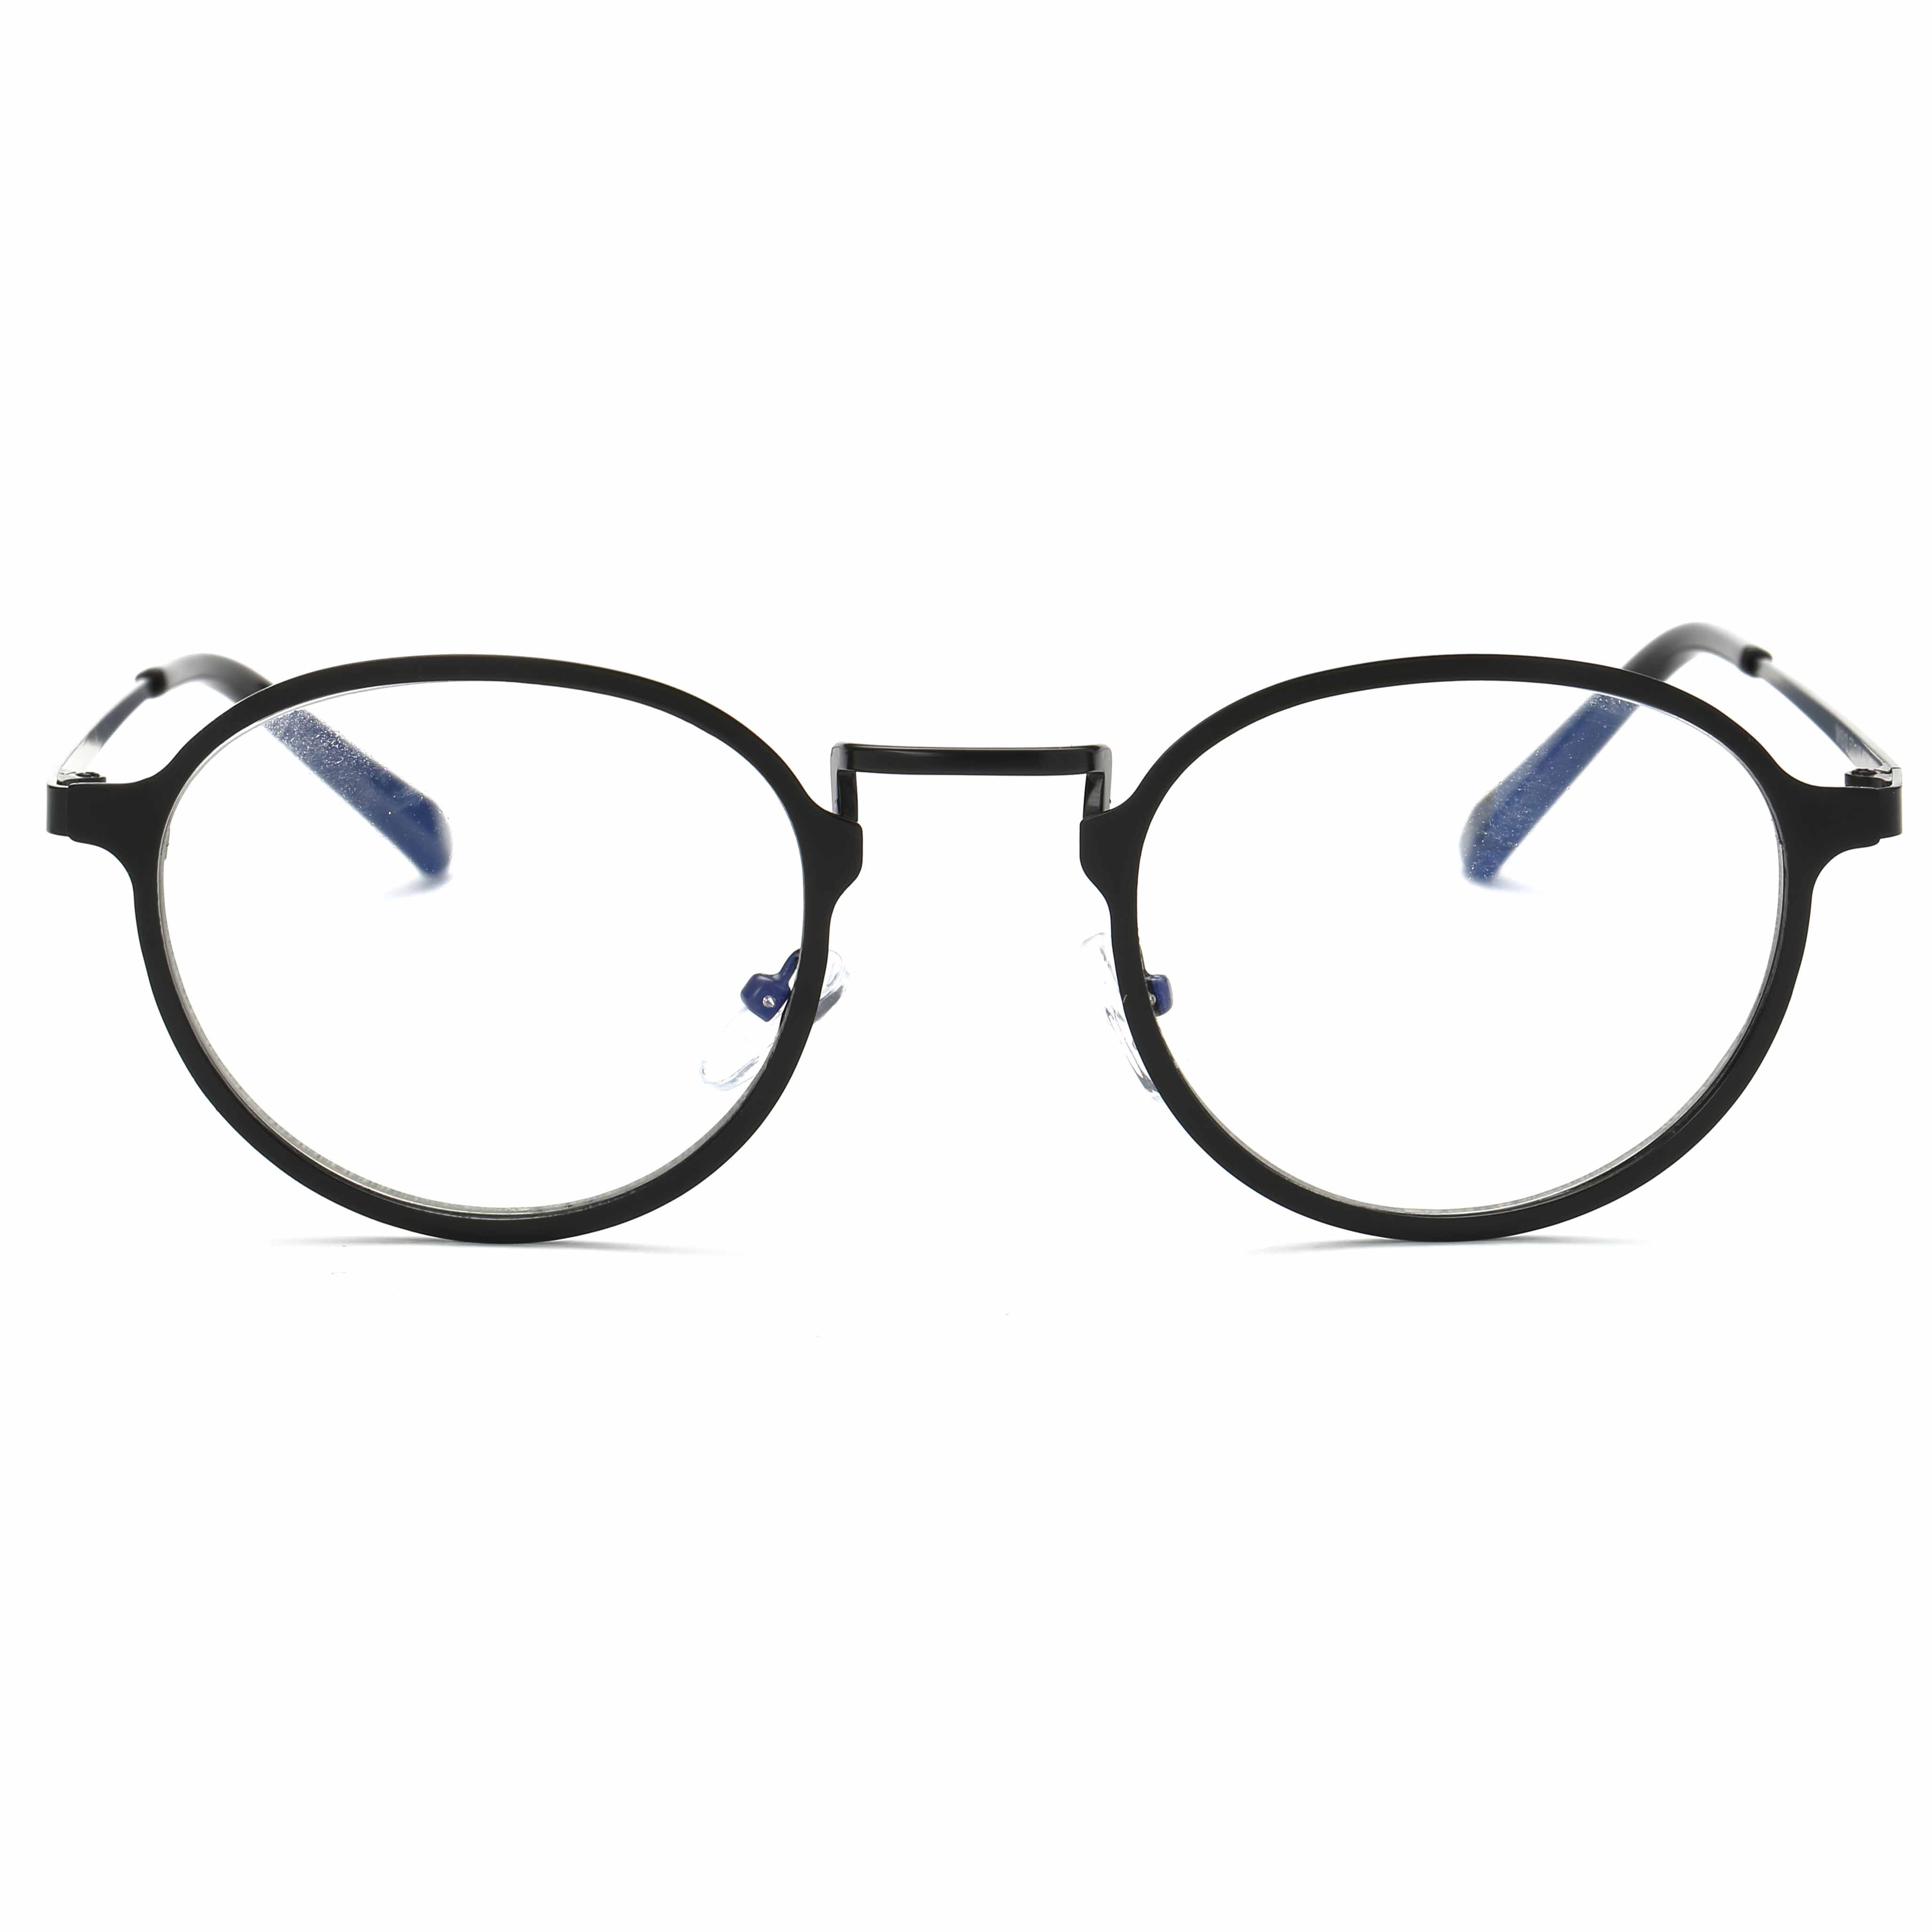 drigueur products light blue pte glasses shadez ltd bl